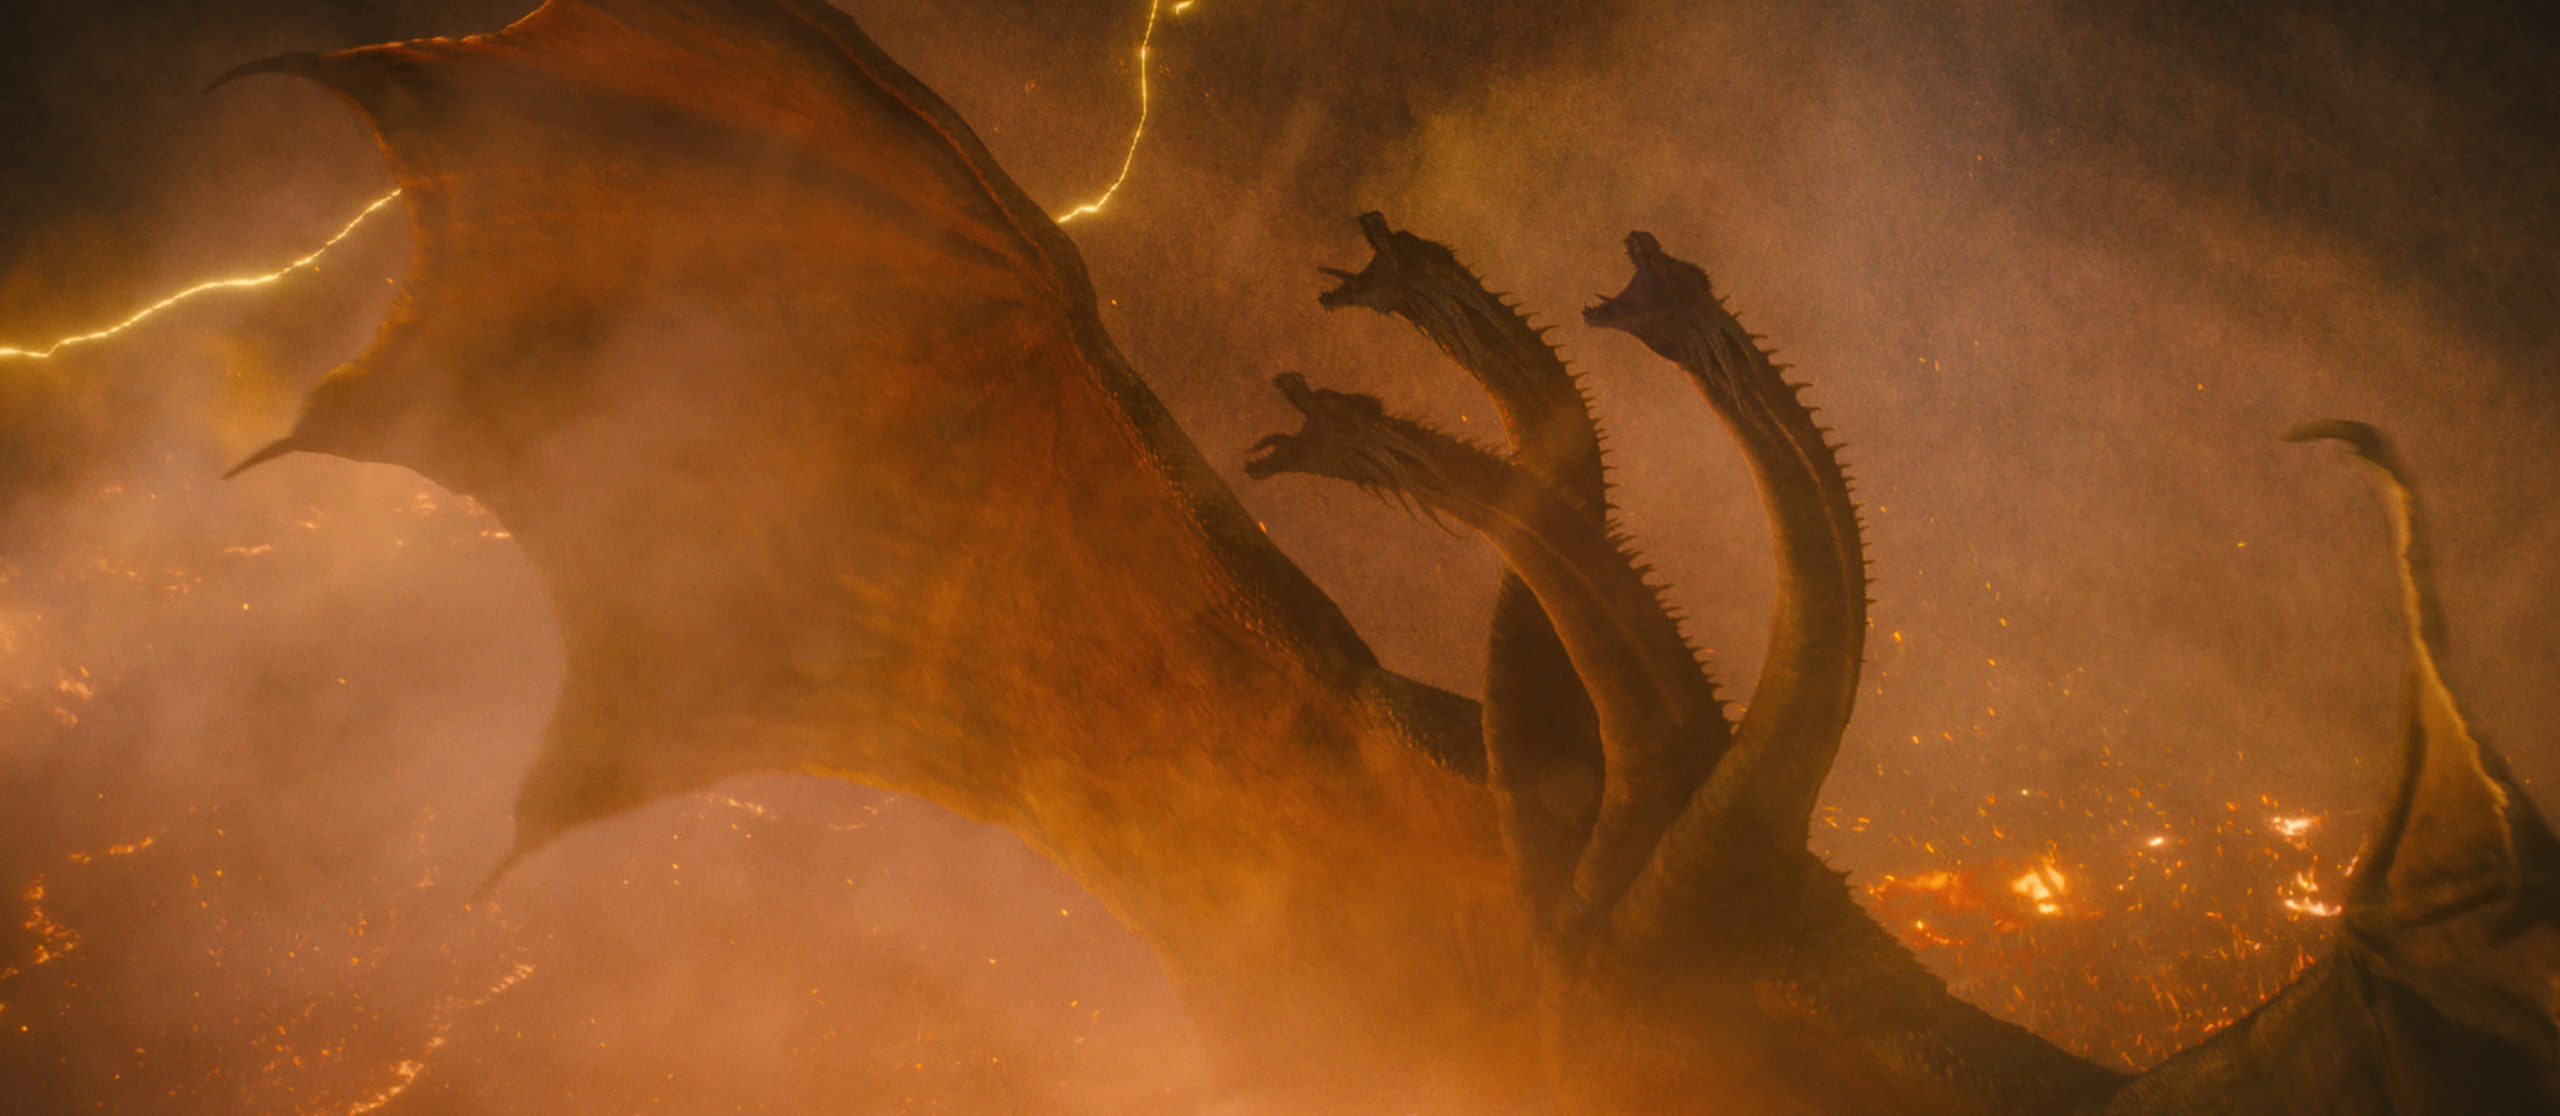 """KING GHIDORAH in Warner Bros. Pictures' and Legendary Pictures' action adventure """"GODZILLA: KING OF THE MONSTERS,"""" a Warner Bros. Pictures release."""